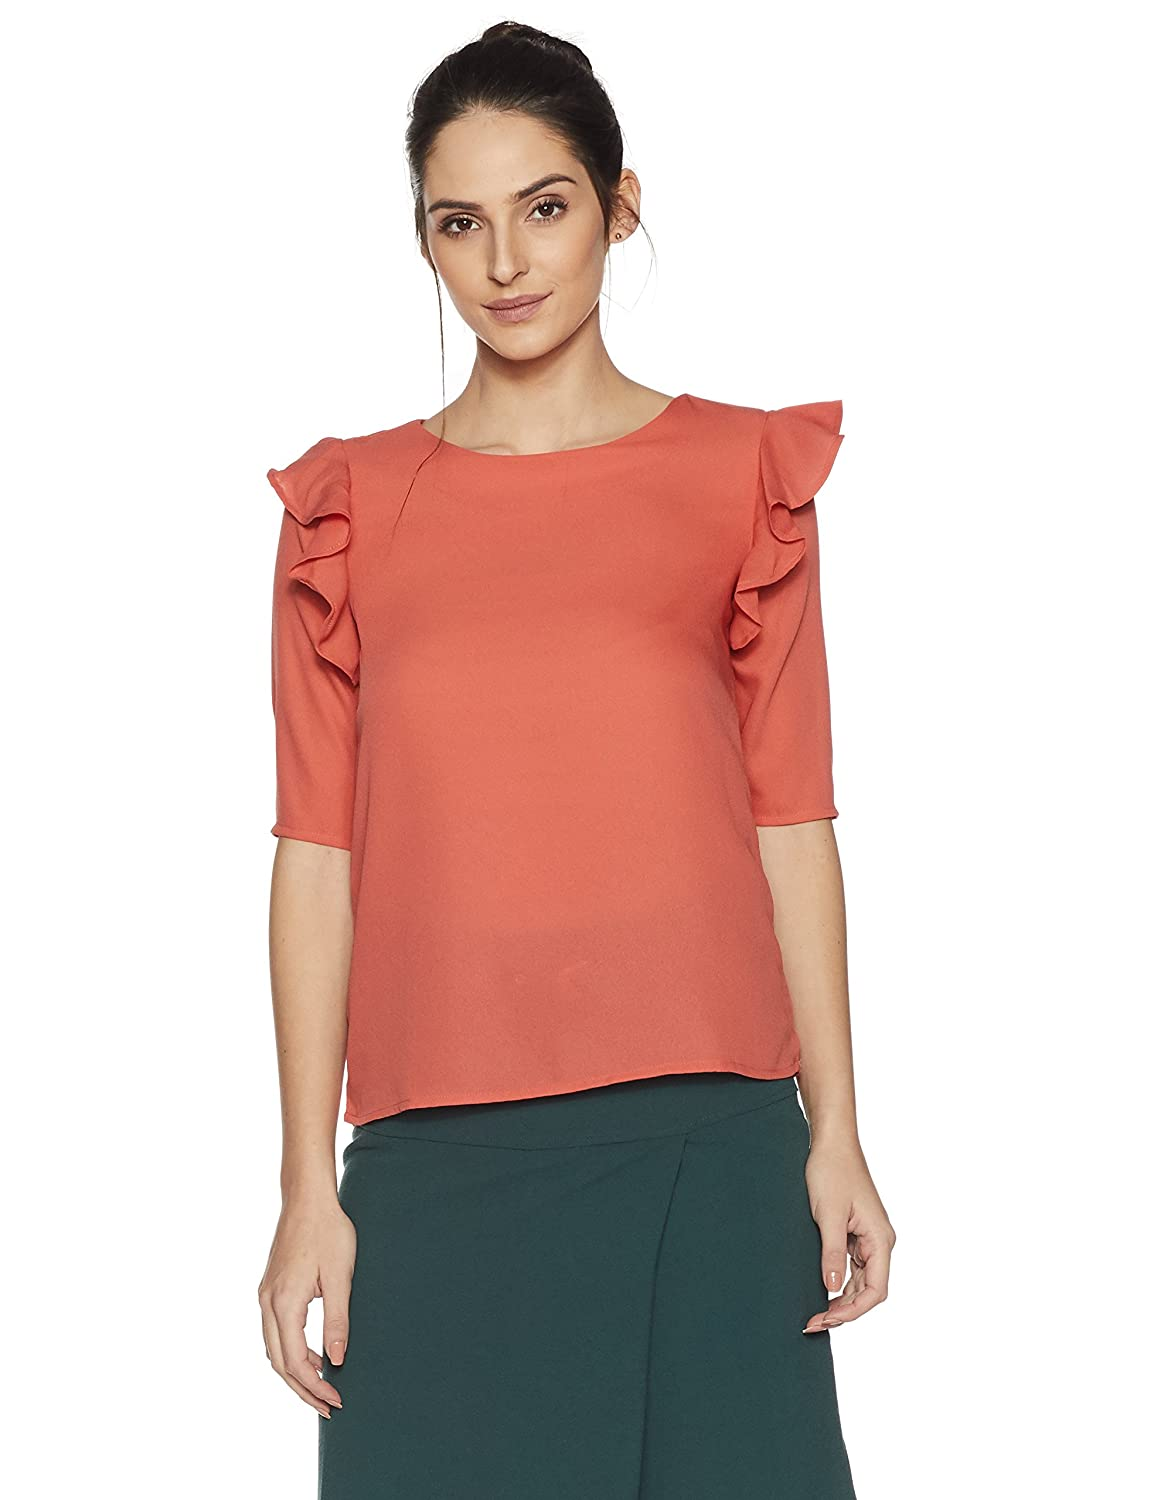 Women's Ruffle Blouse Top